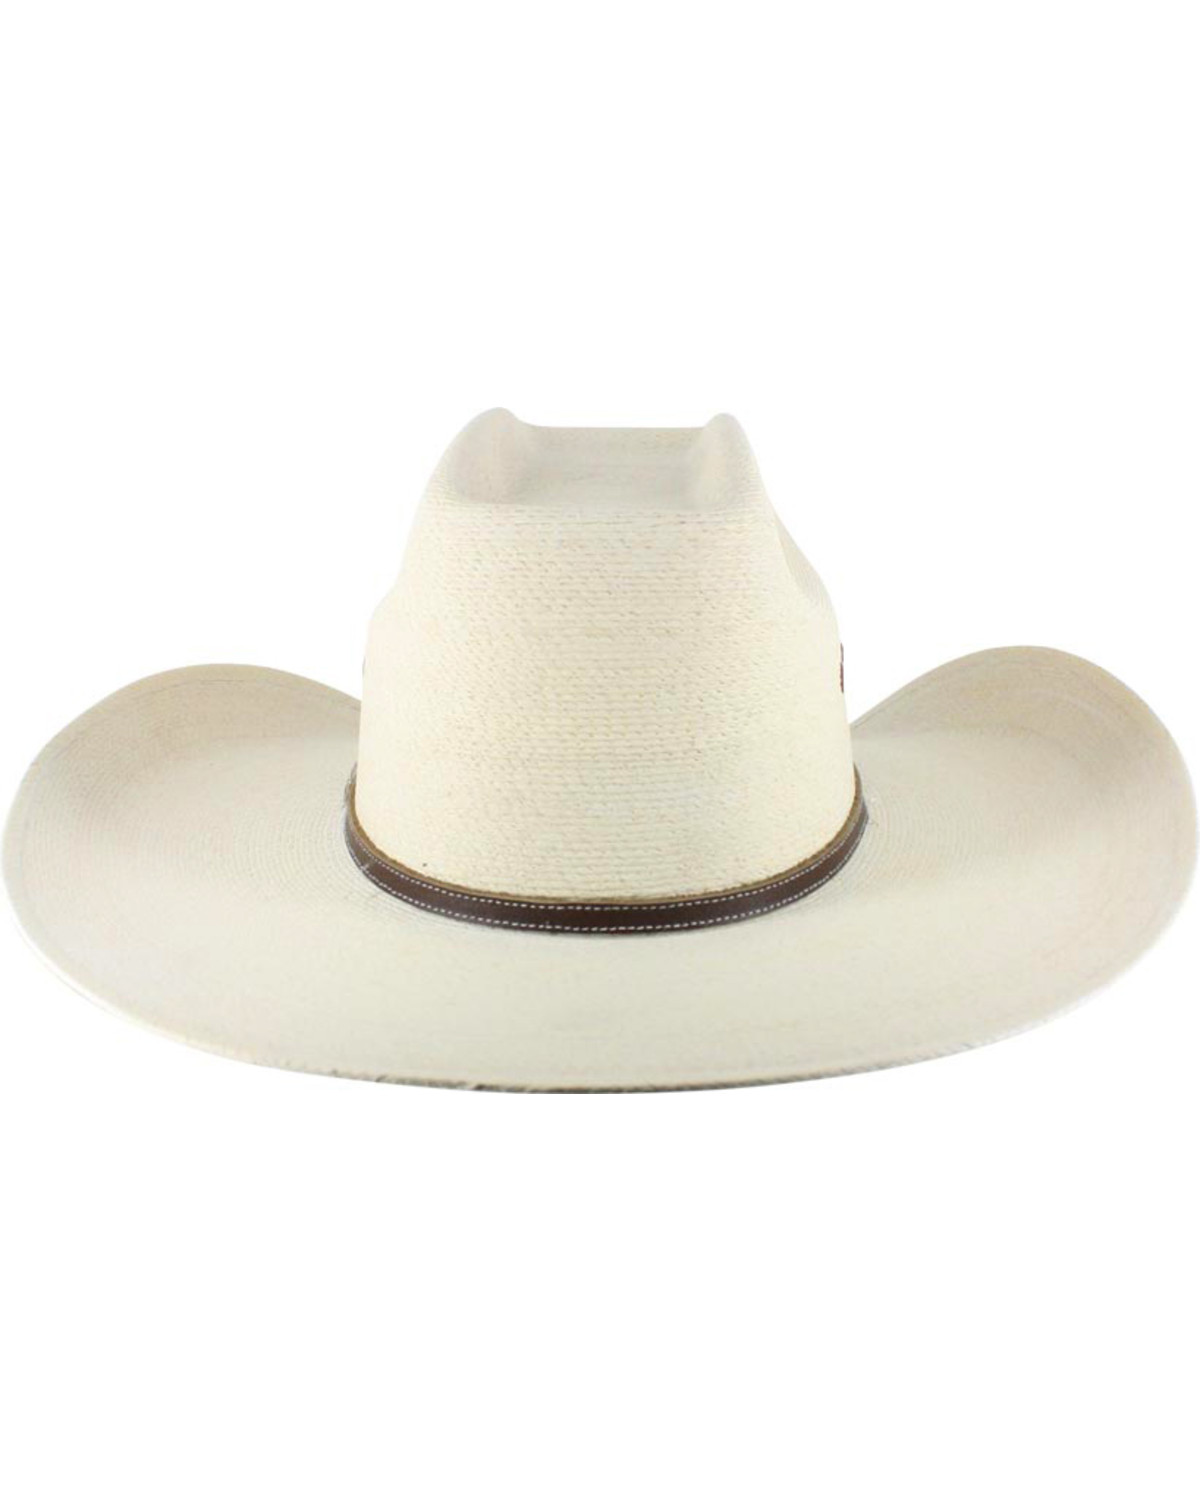 c0c1eaf91f162 Atwood Men s 7X Kaycee Palm Leaf Straw Cowboy Hat - Country Outfitter